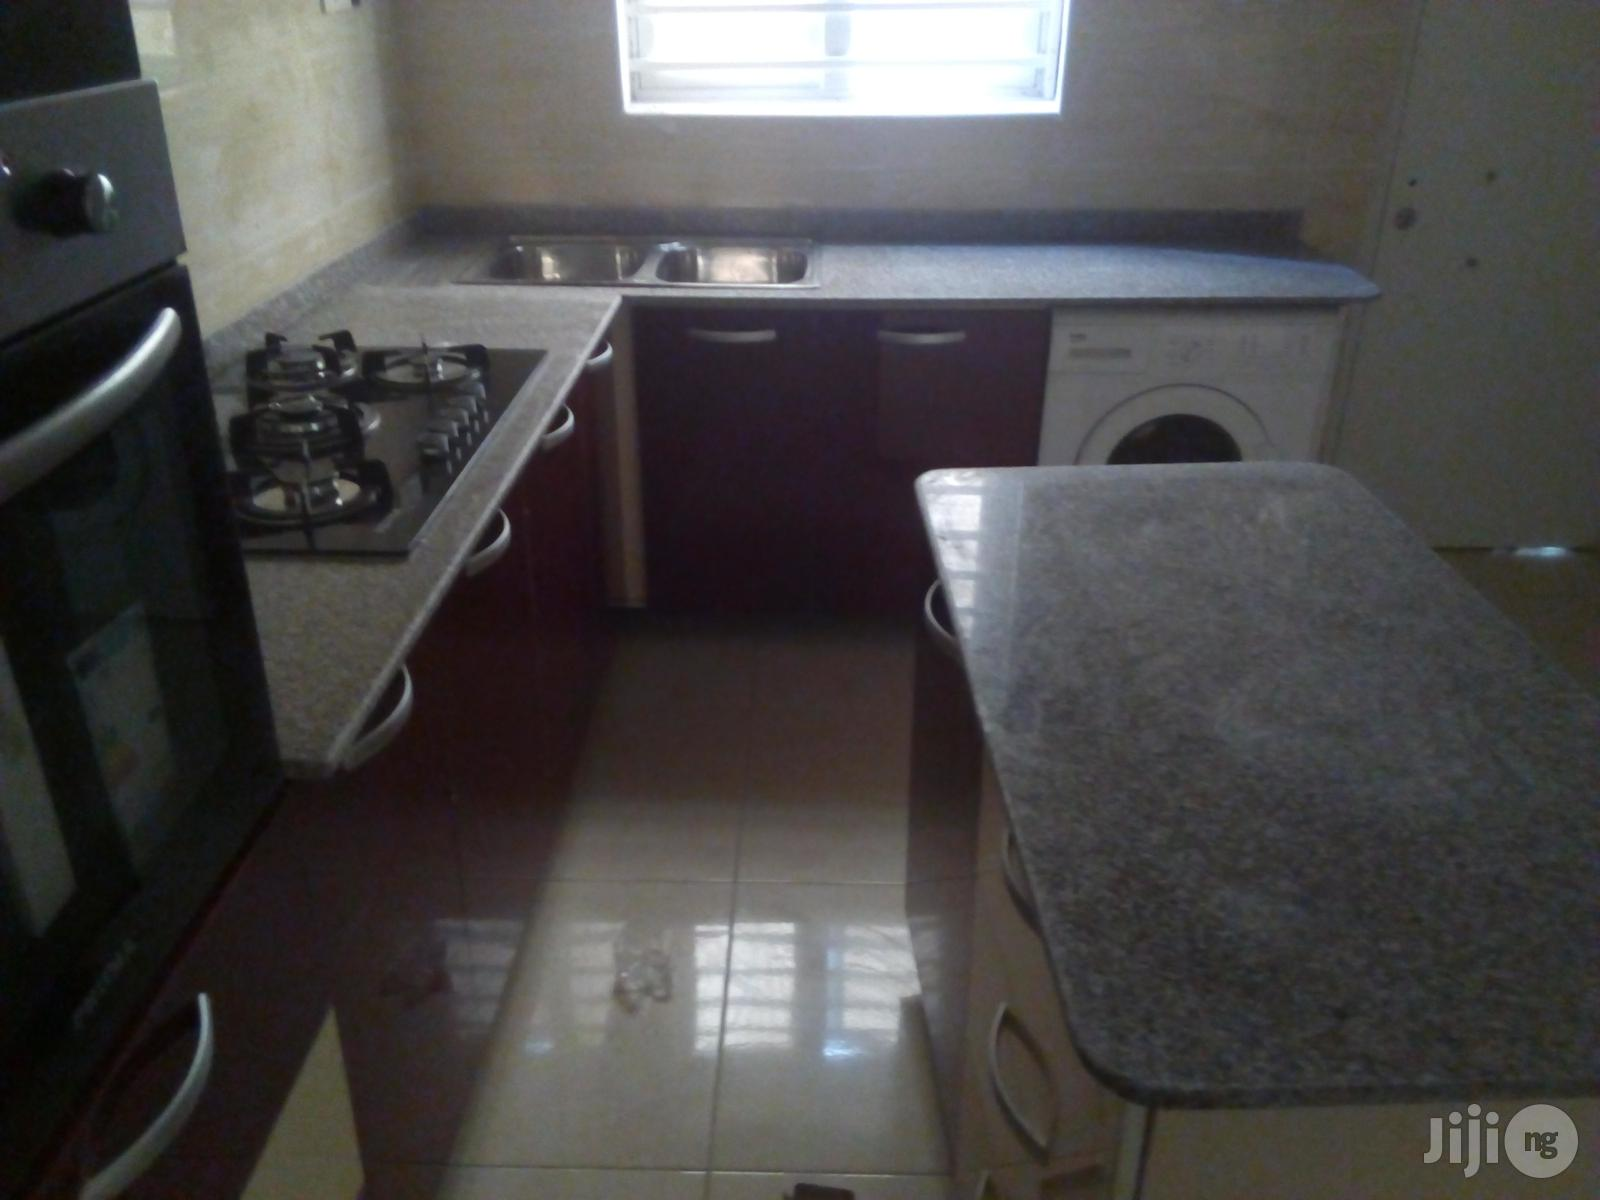 Granite Top And Cabinet For Homes And Offices | Furniture for sale in Ikorodu, Lagos State, Nigeria